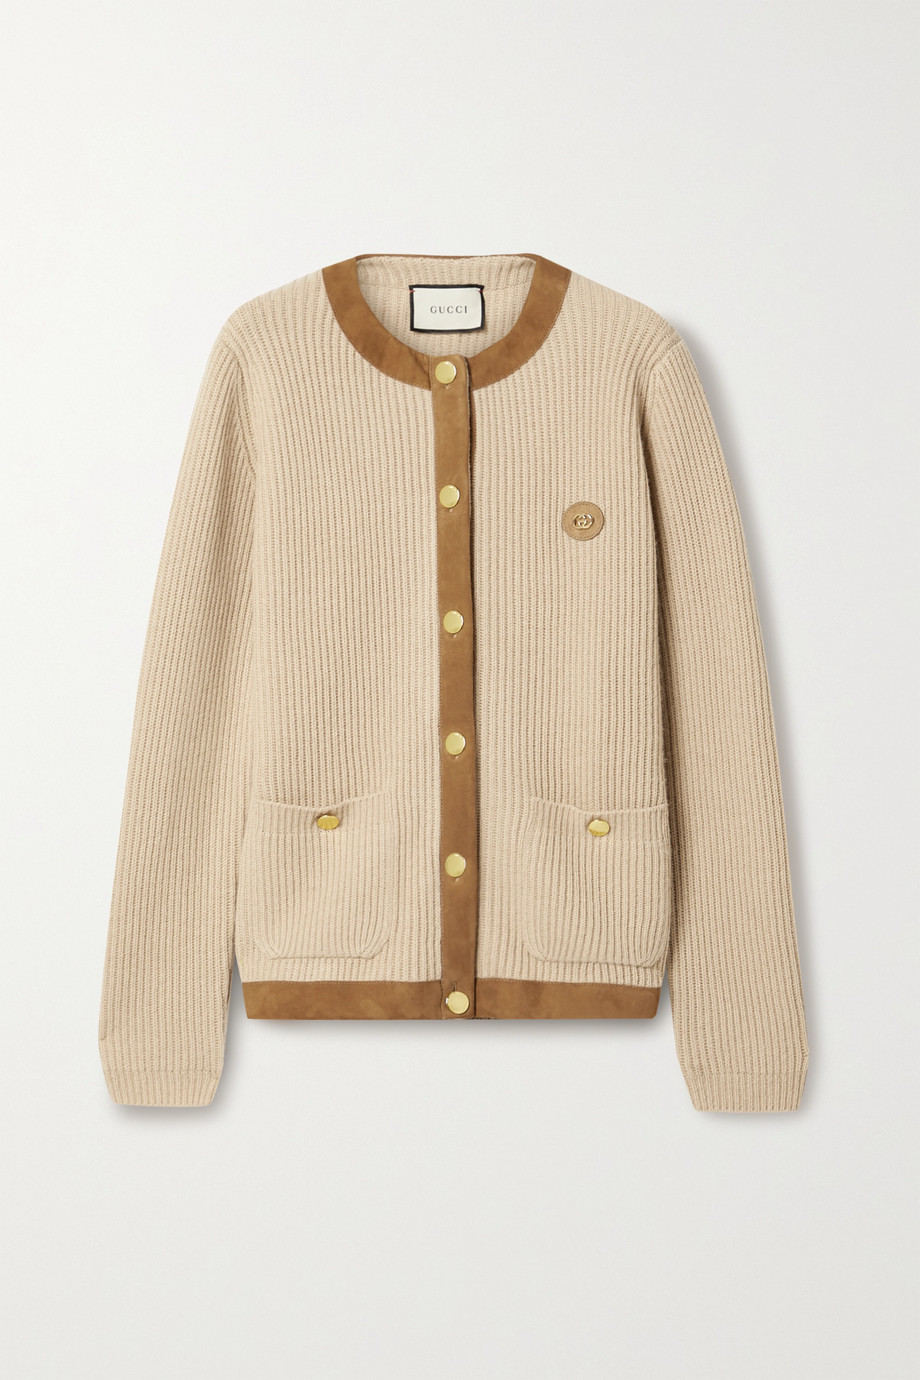 Gucci Embellished suede-trimmed ribbed camel hair cardigan